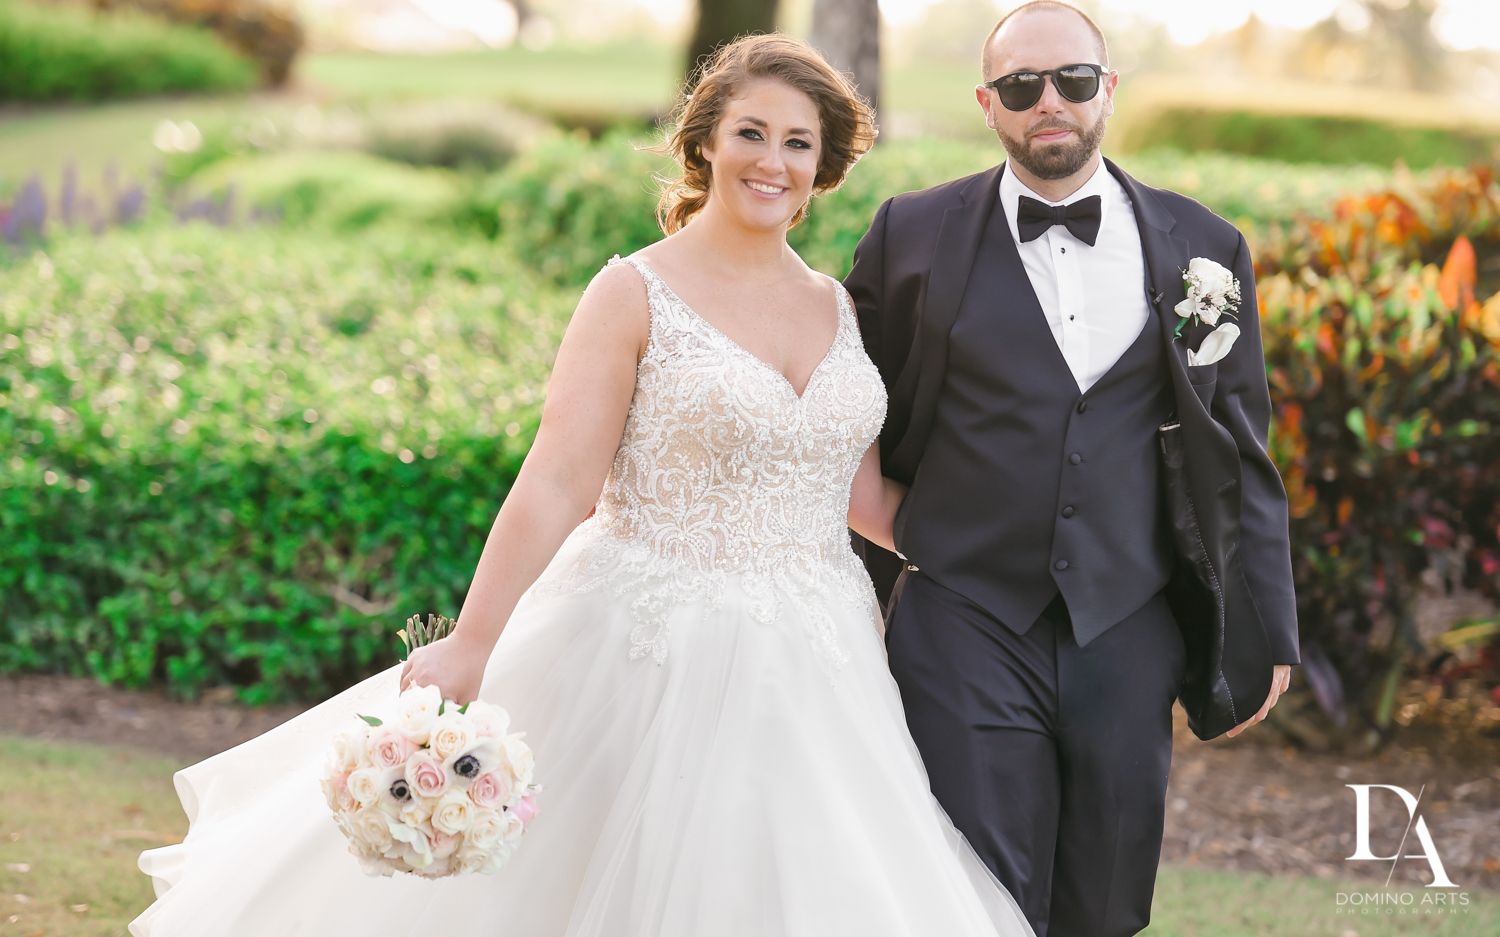 Couple at Romantic Outdoors Wedding at Woodfield Country Club in Boca Raton, Florida